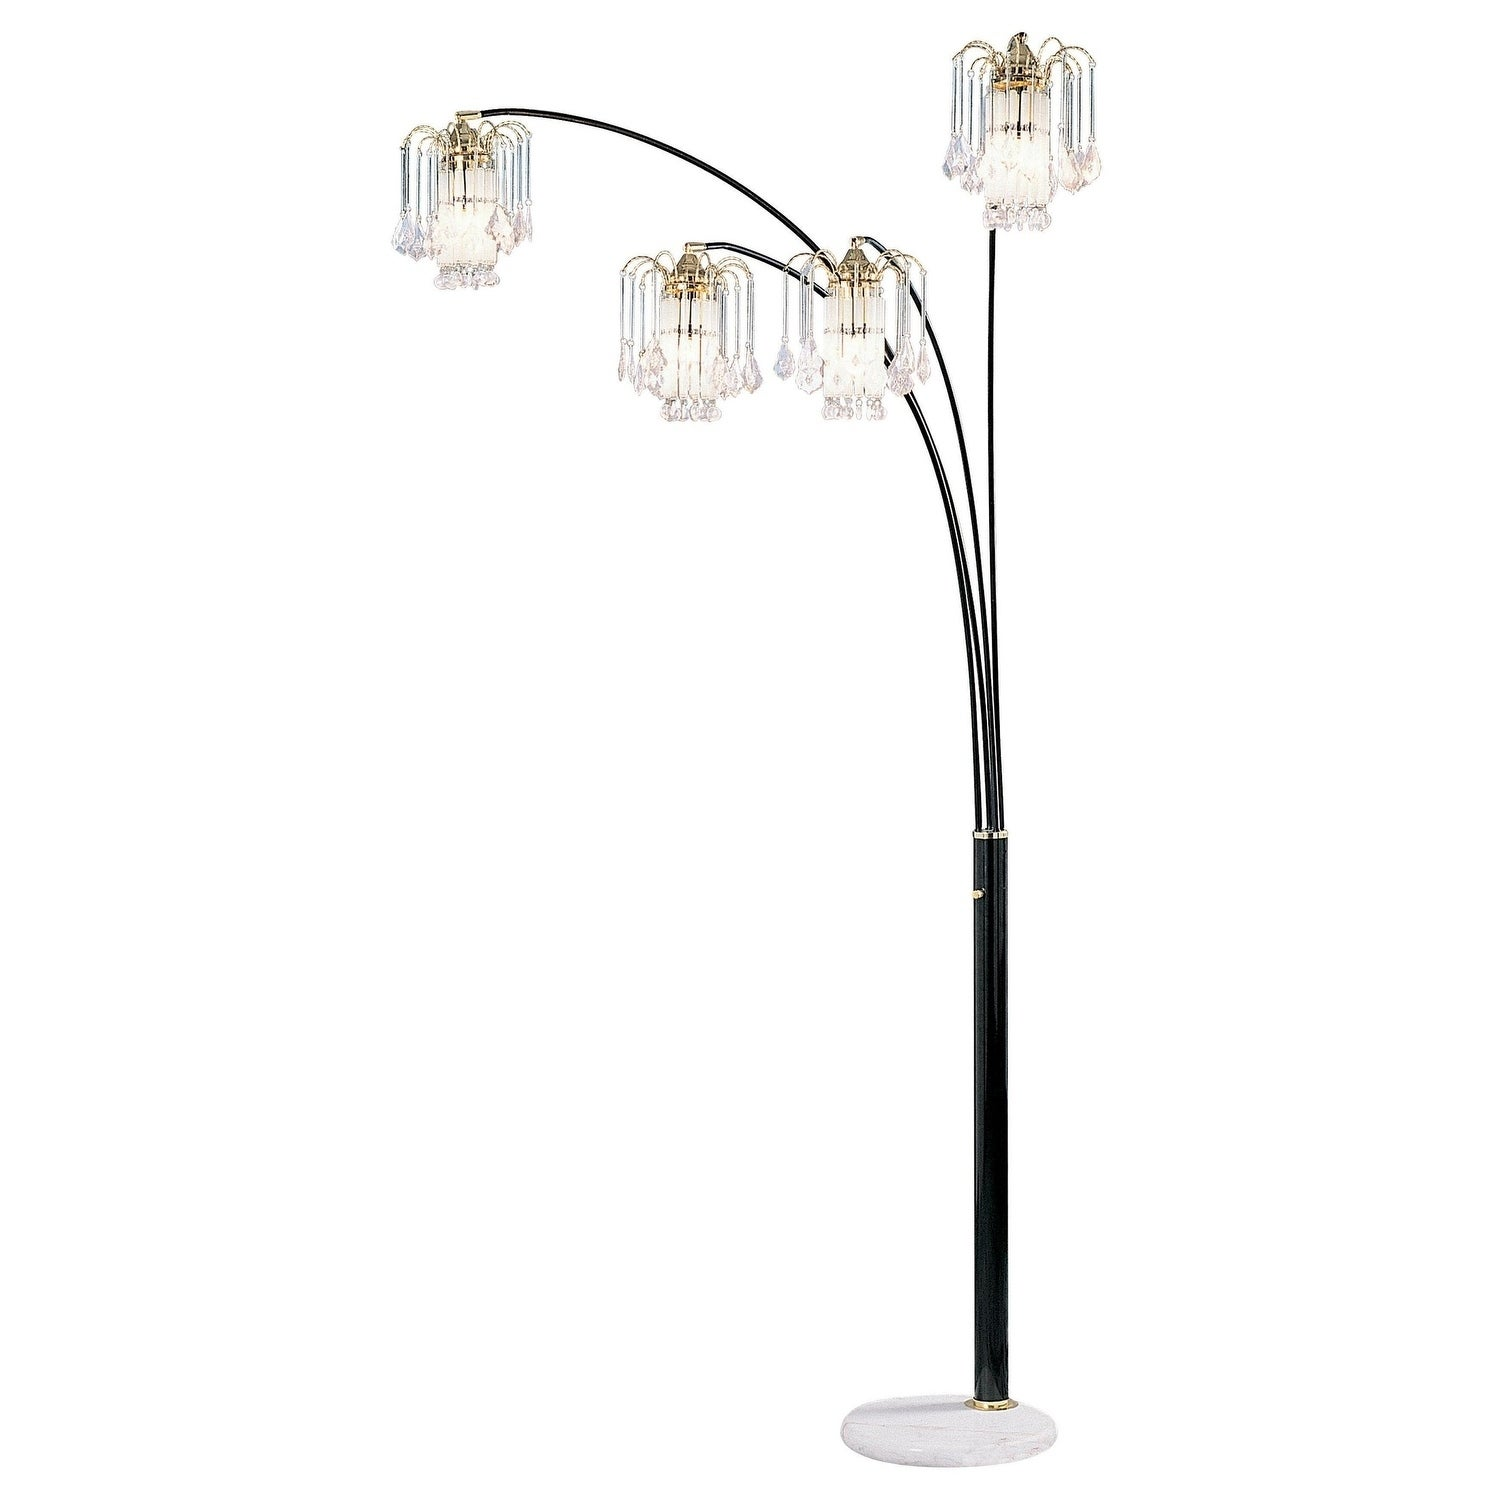 Shop Black Friday Deals On Blk 4 Arch Fl Lamp With Crystal Shade On Sale Overstock 25623839